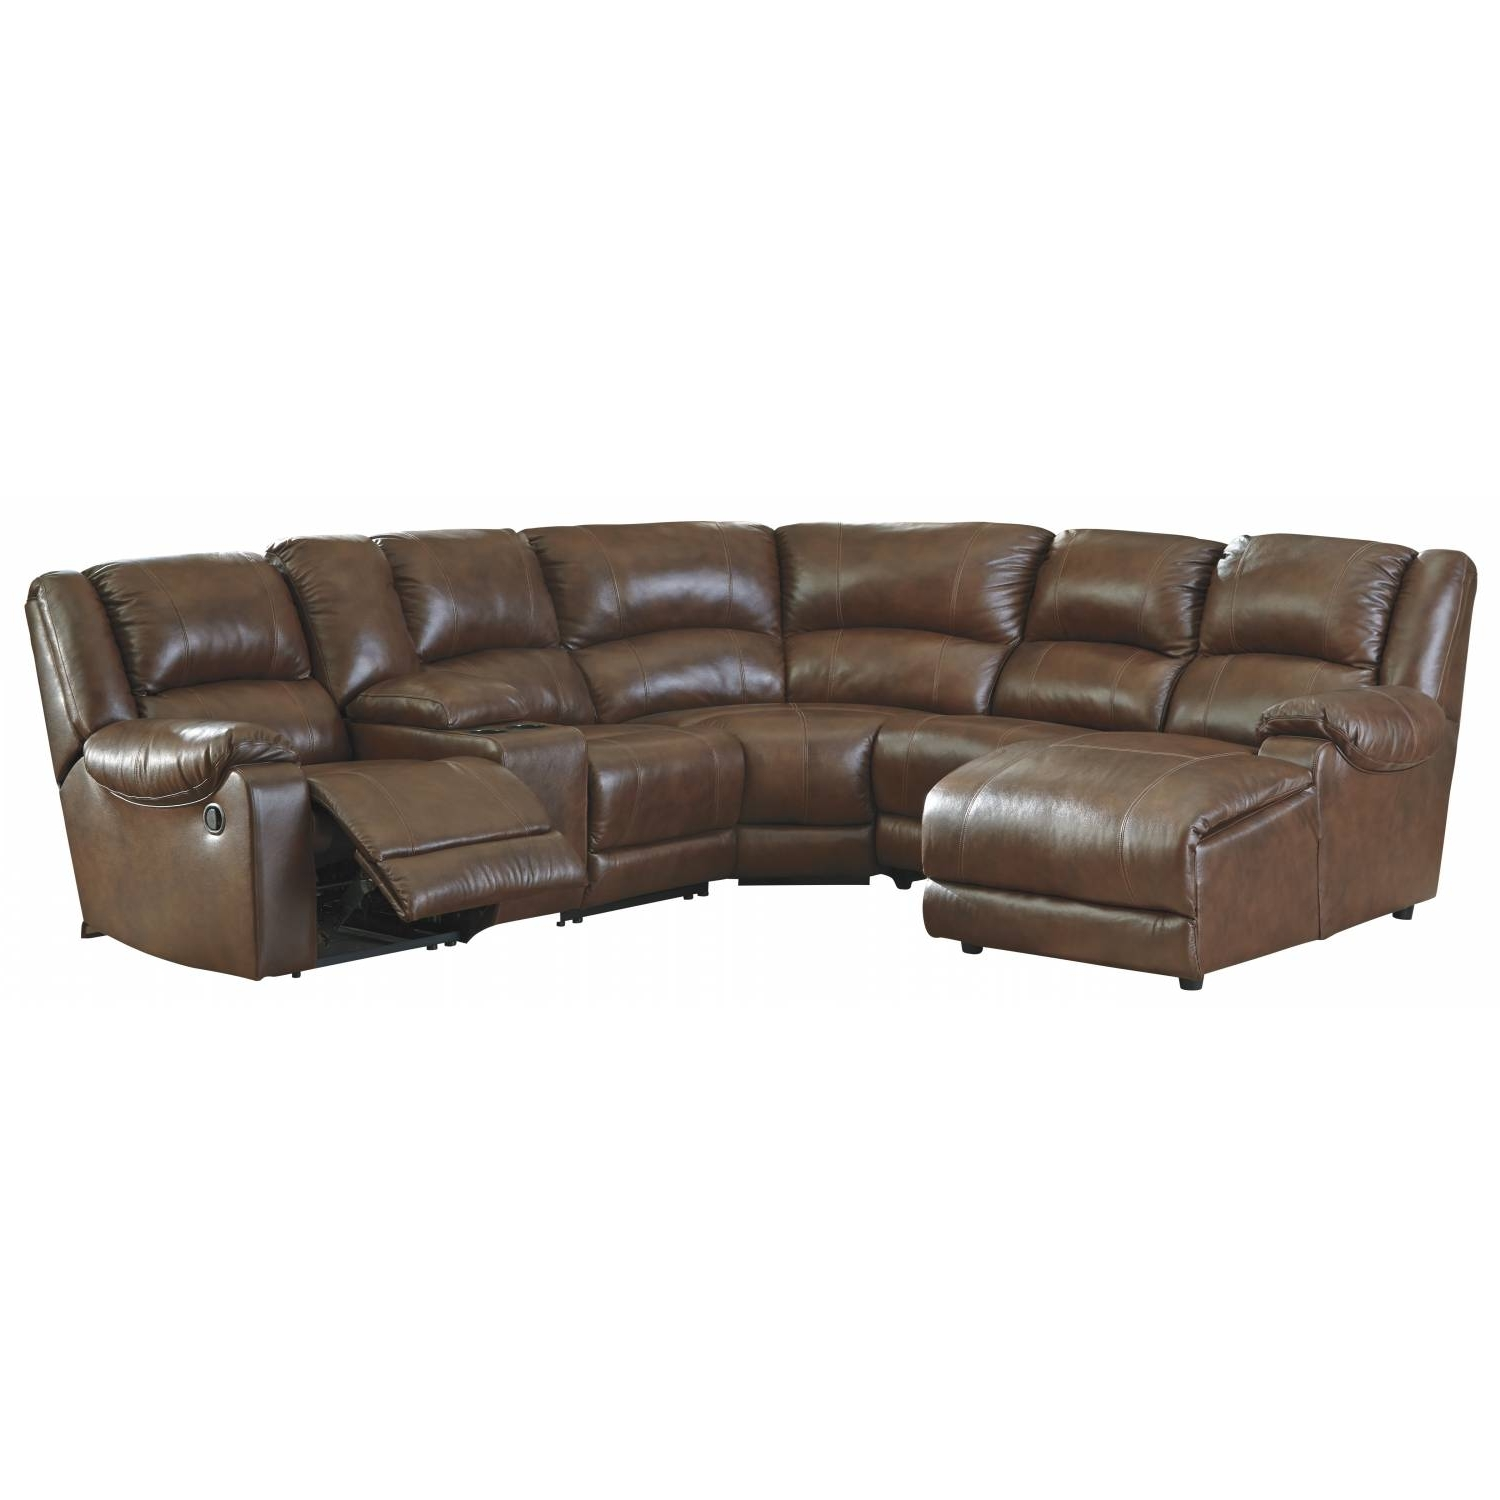 [%Sectional Sofas Discount – Sale Off 20% Furniture In San Francisco With Regard To Best And Newest San Francisco Sectional Sofas|San Francisco Sectional Sofas For Famous Sectional Sofas Discount – Sale Off 20% Furniture In San Francisco|Famous San Francisco Sectional Sofas Inside Sectional Sofas Discount – Sale Off 20% Furniture In San Francisco|Newest Sectional Sofas Discount – Sale Off 20% Furniture In San Francisco With Regard To San Francisco Sectional Sofas%] (View 2 of 15)